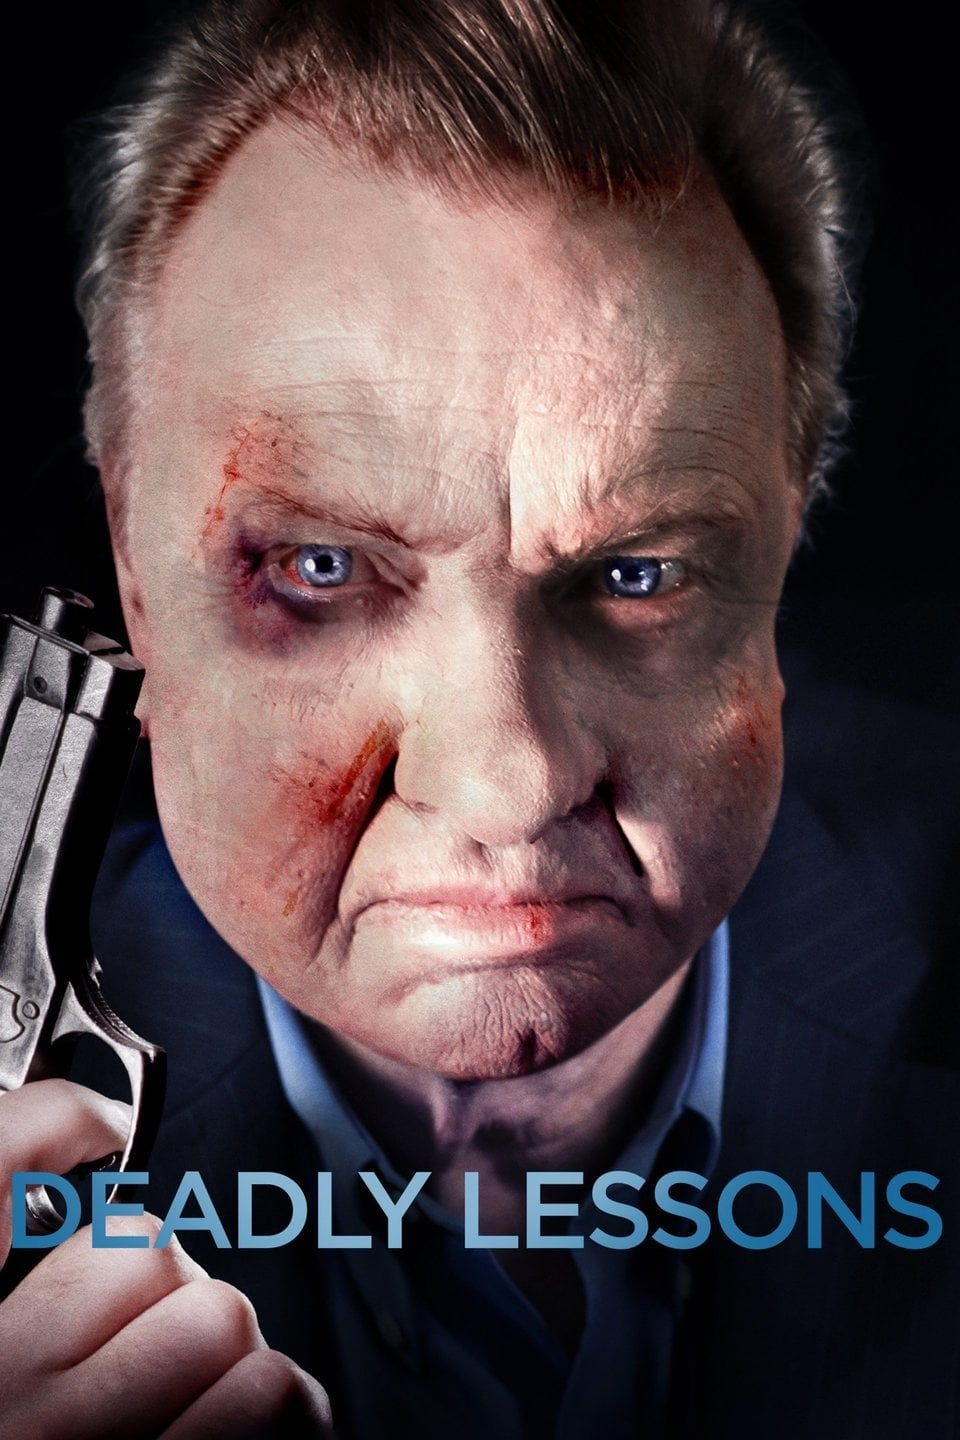 Deadly Lessons (2006)